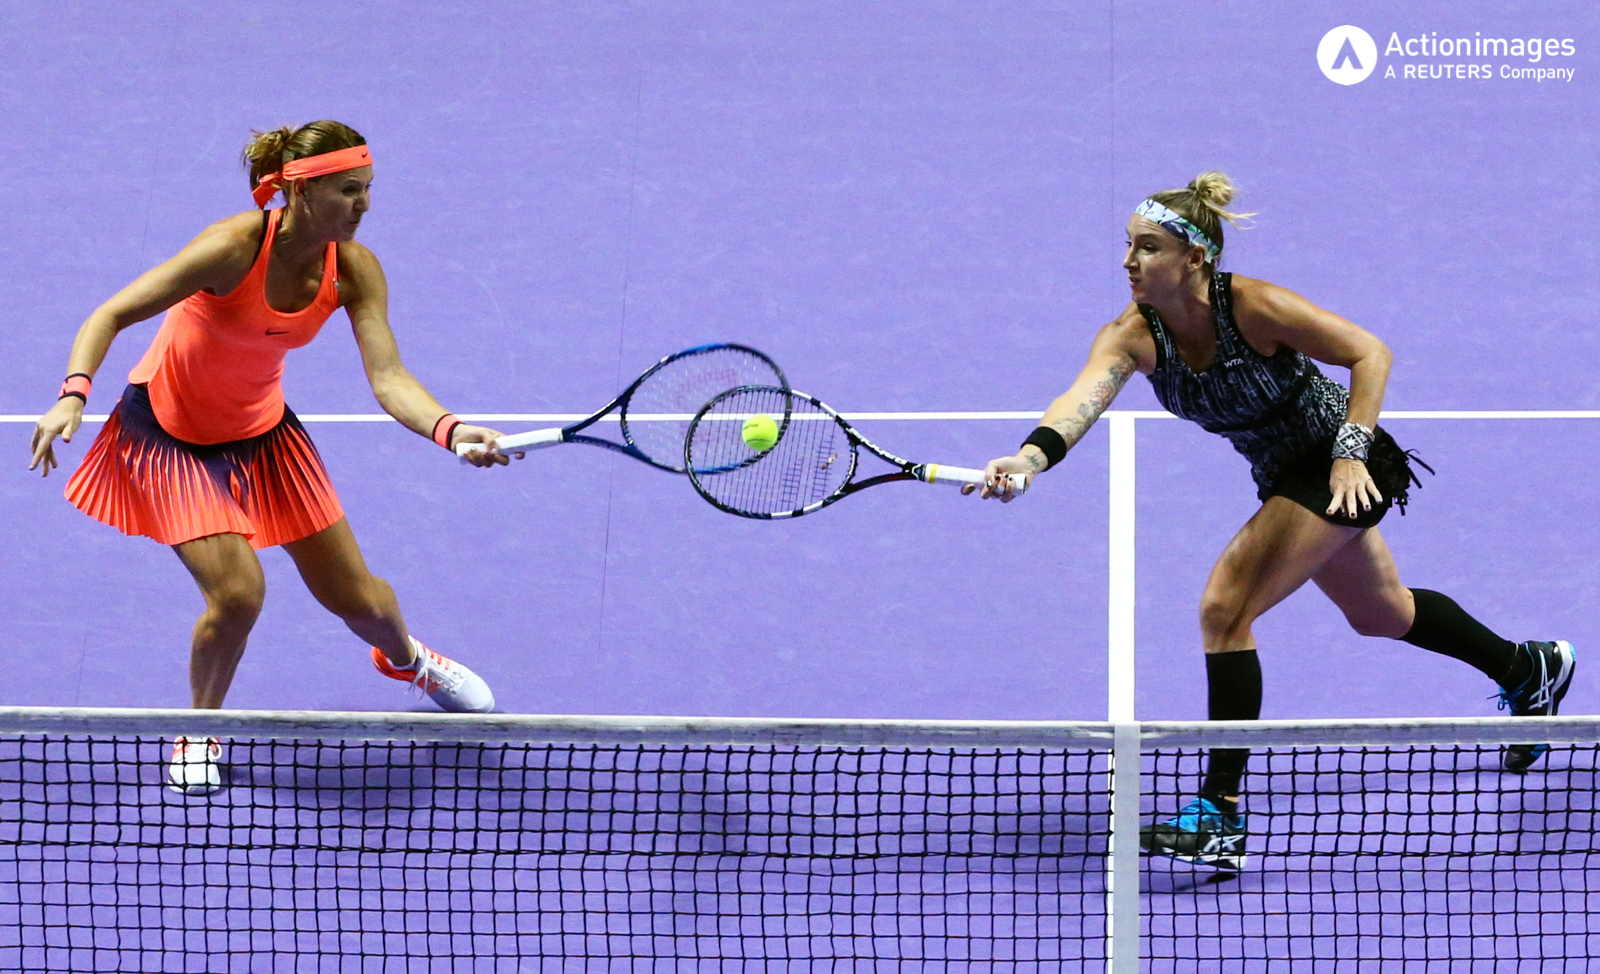 Tennis - BNP Paribas WTA Finals - Singapore Indoor Stadium - 30/10/16 USA's Bethanie Mattek-Sands and Czech Republic's Lucie Safarova in action during their final match Mandatory Credit: Action Images / Yong Teck Lim Livepic